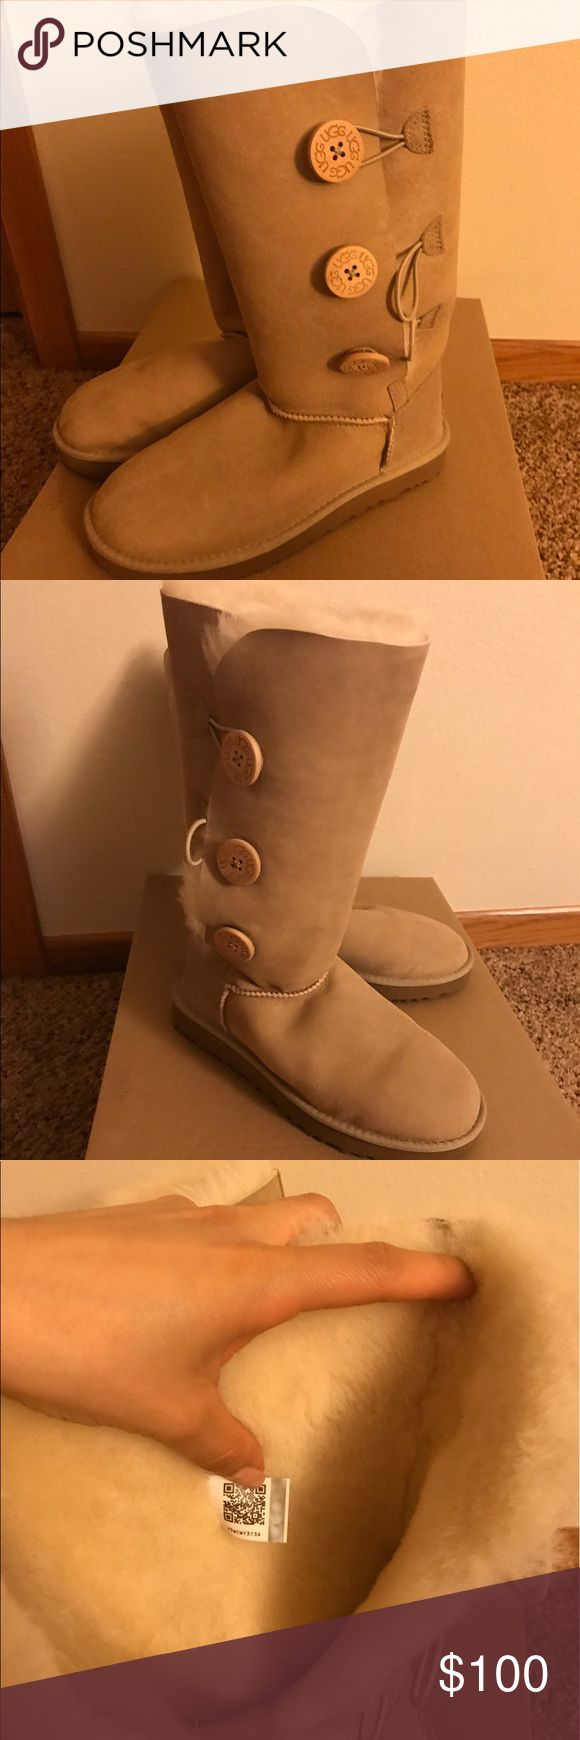 Ugg boots Ugg boots with 3 buttons, with original box. UGG Shoes